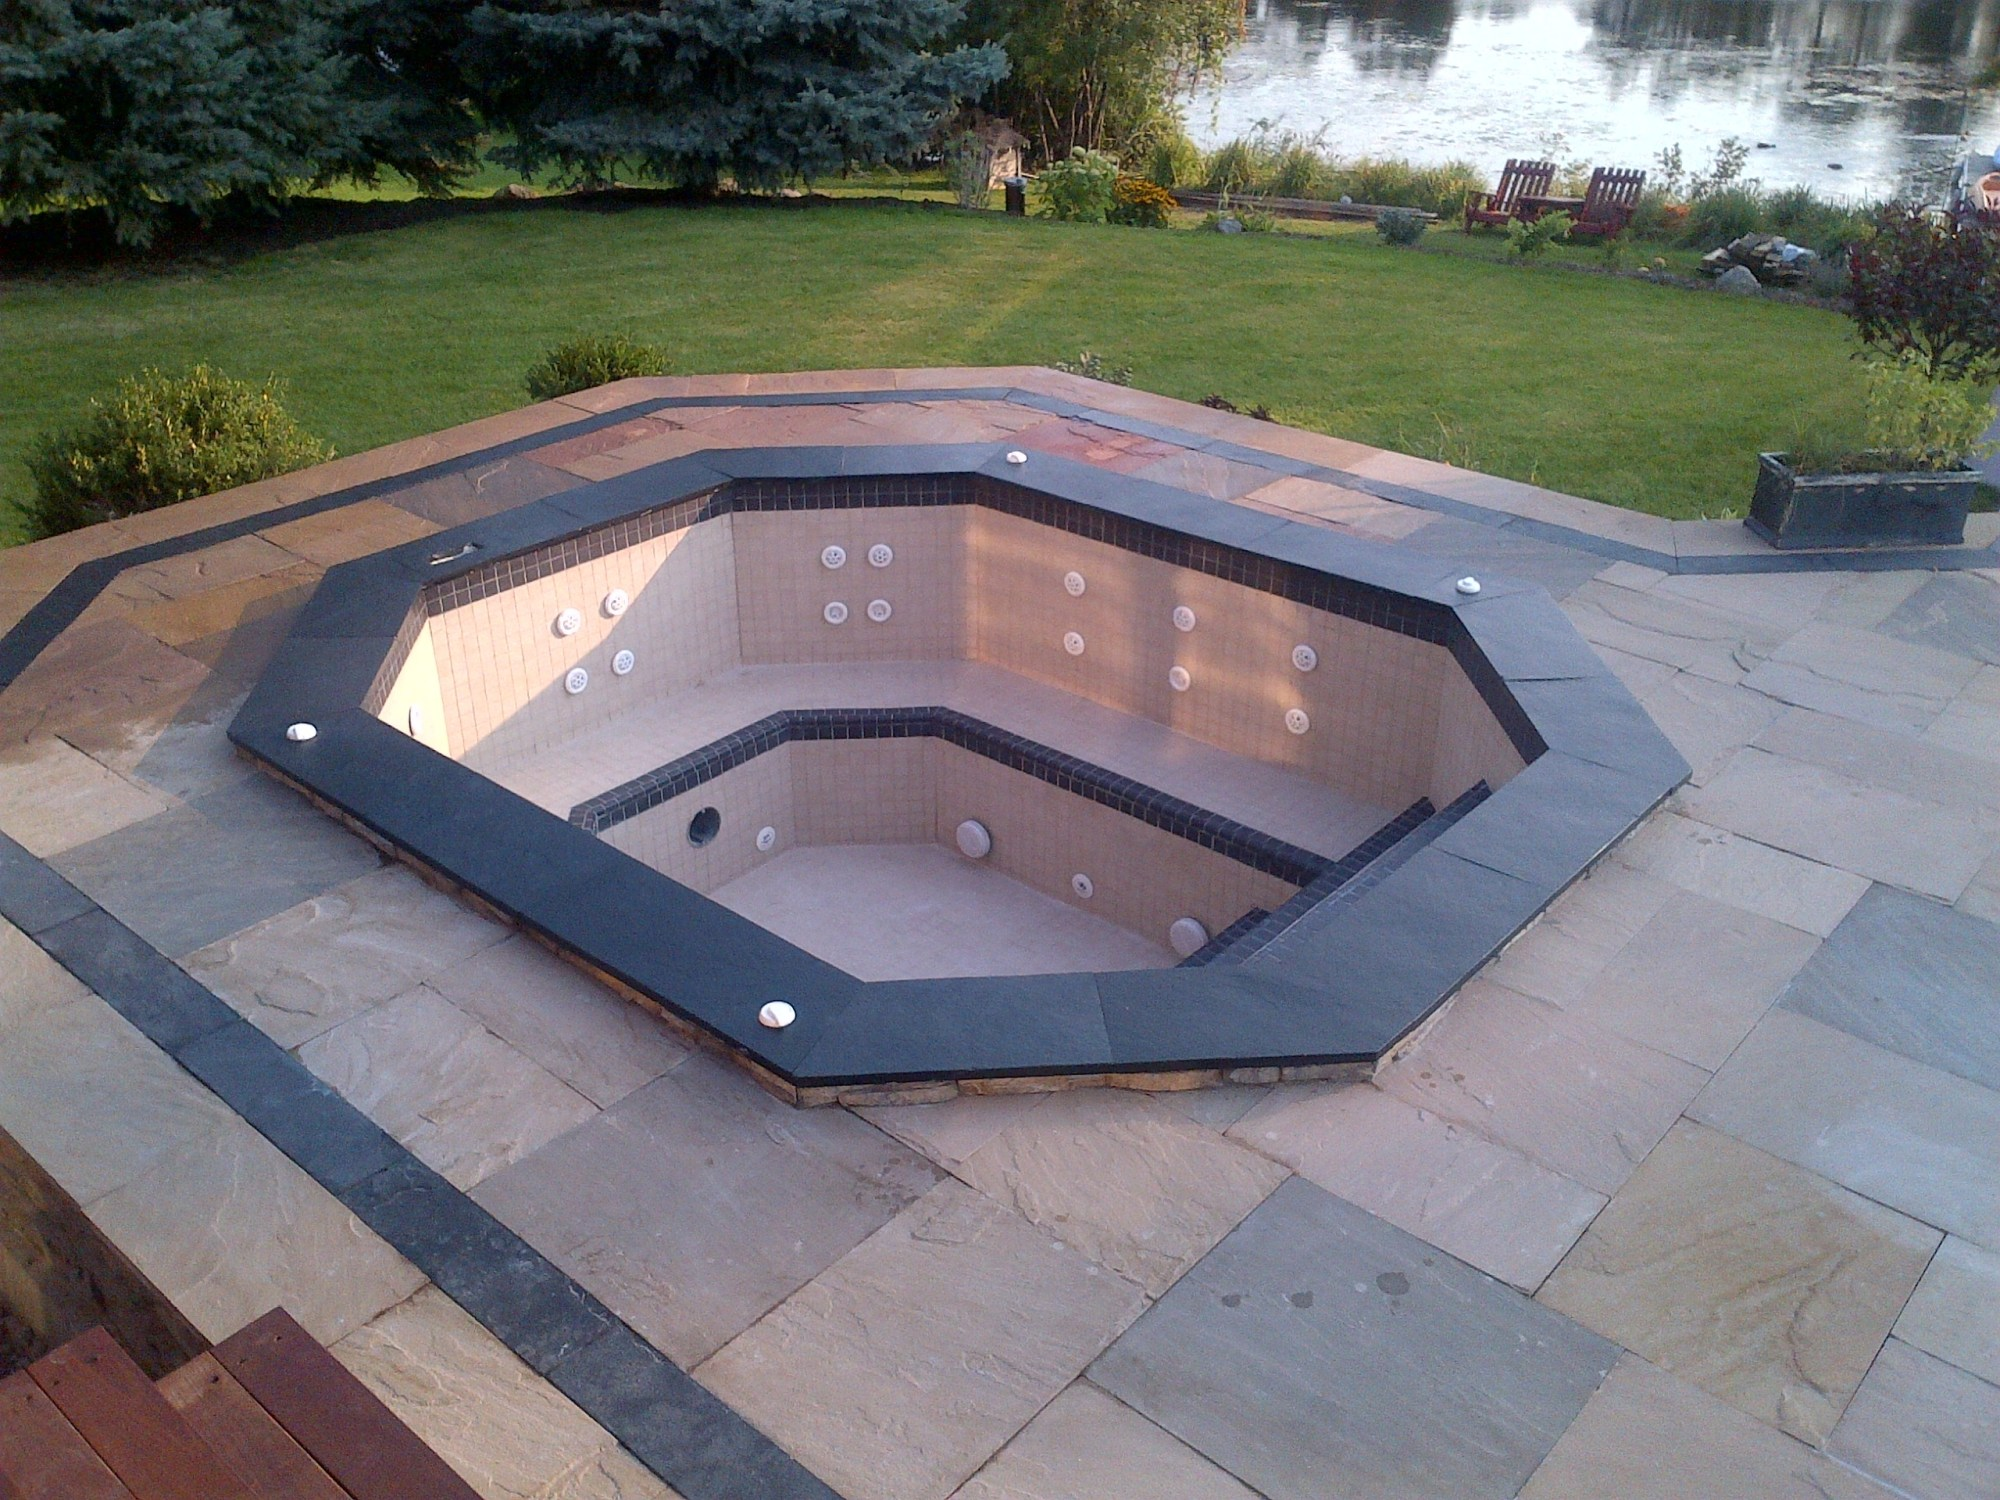 hight resolution of permits for spas and hot tubs like this are required to build this hot tub